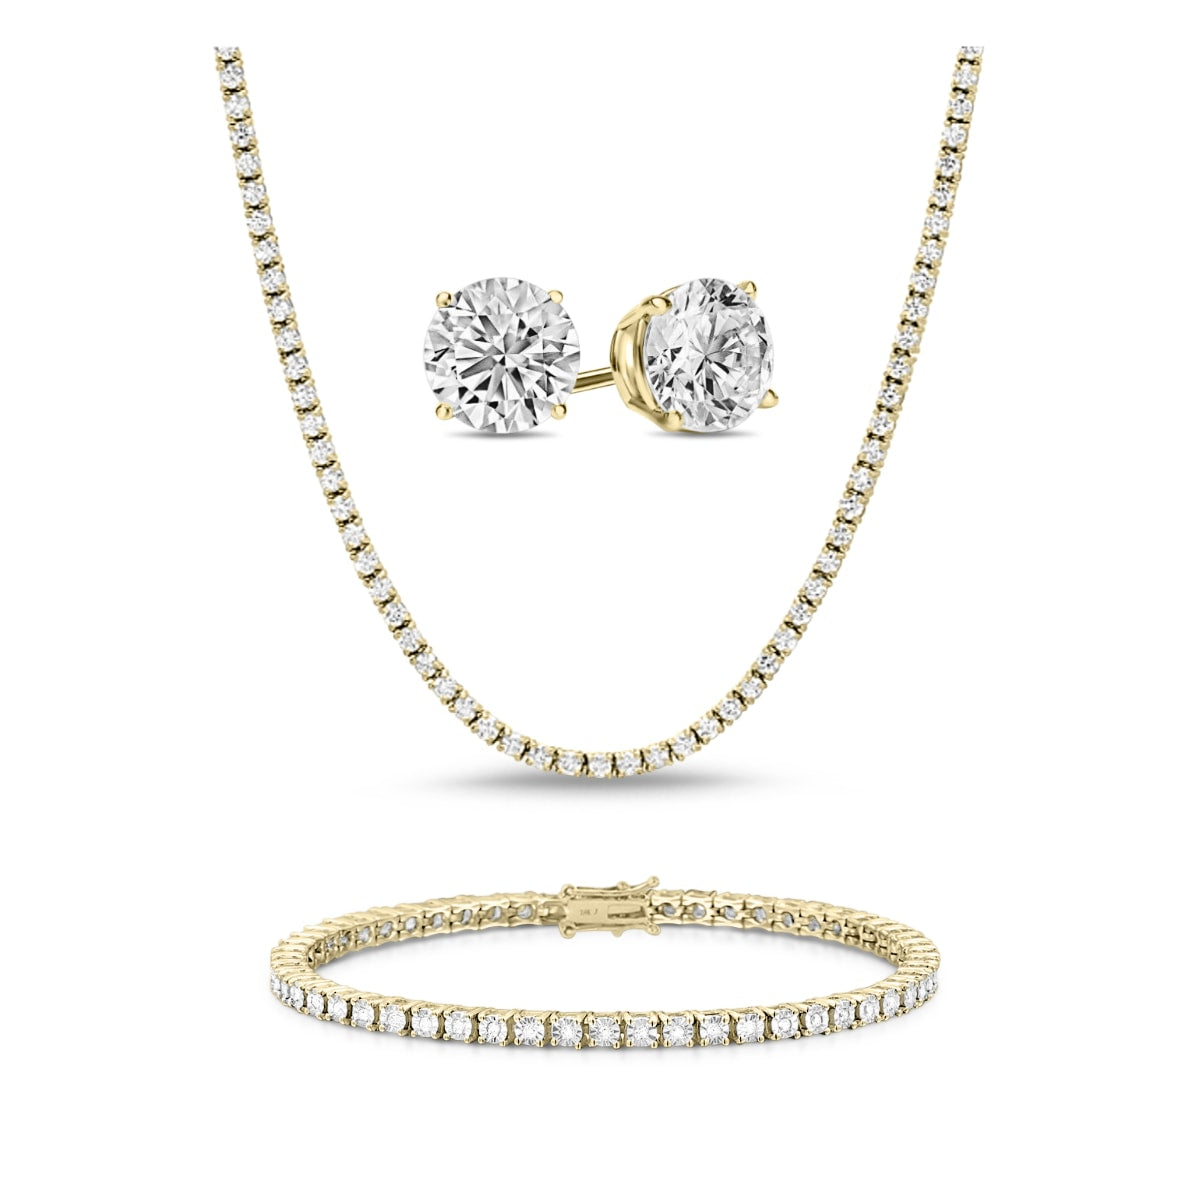 [PROMO SET] Monette 4 Prong Necklace Bracelet Earrings Diamond Set in 18k Gold Vermeil